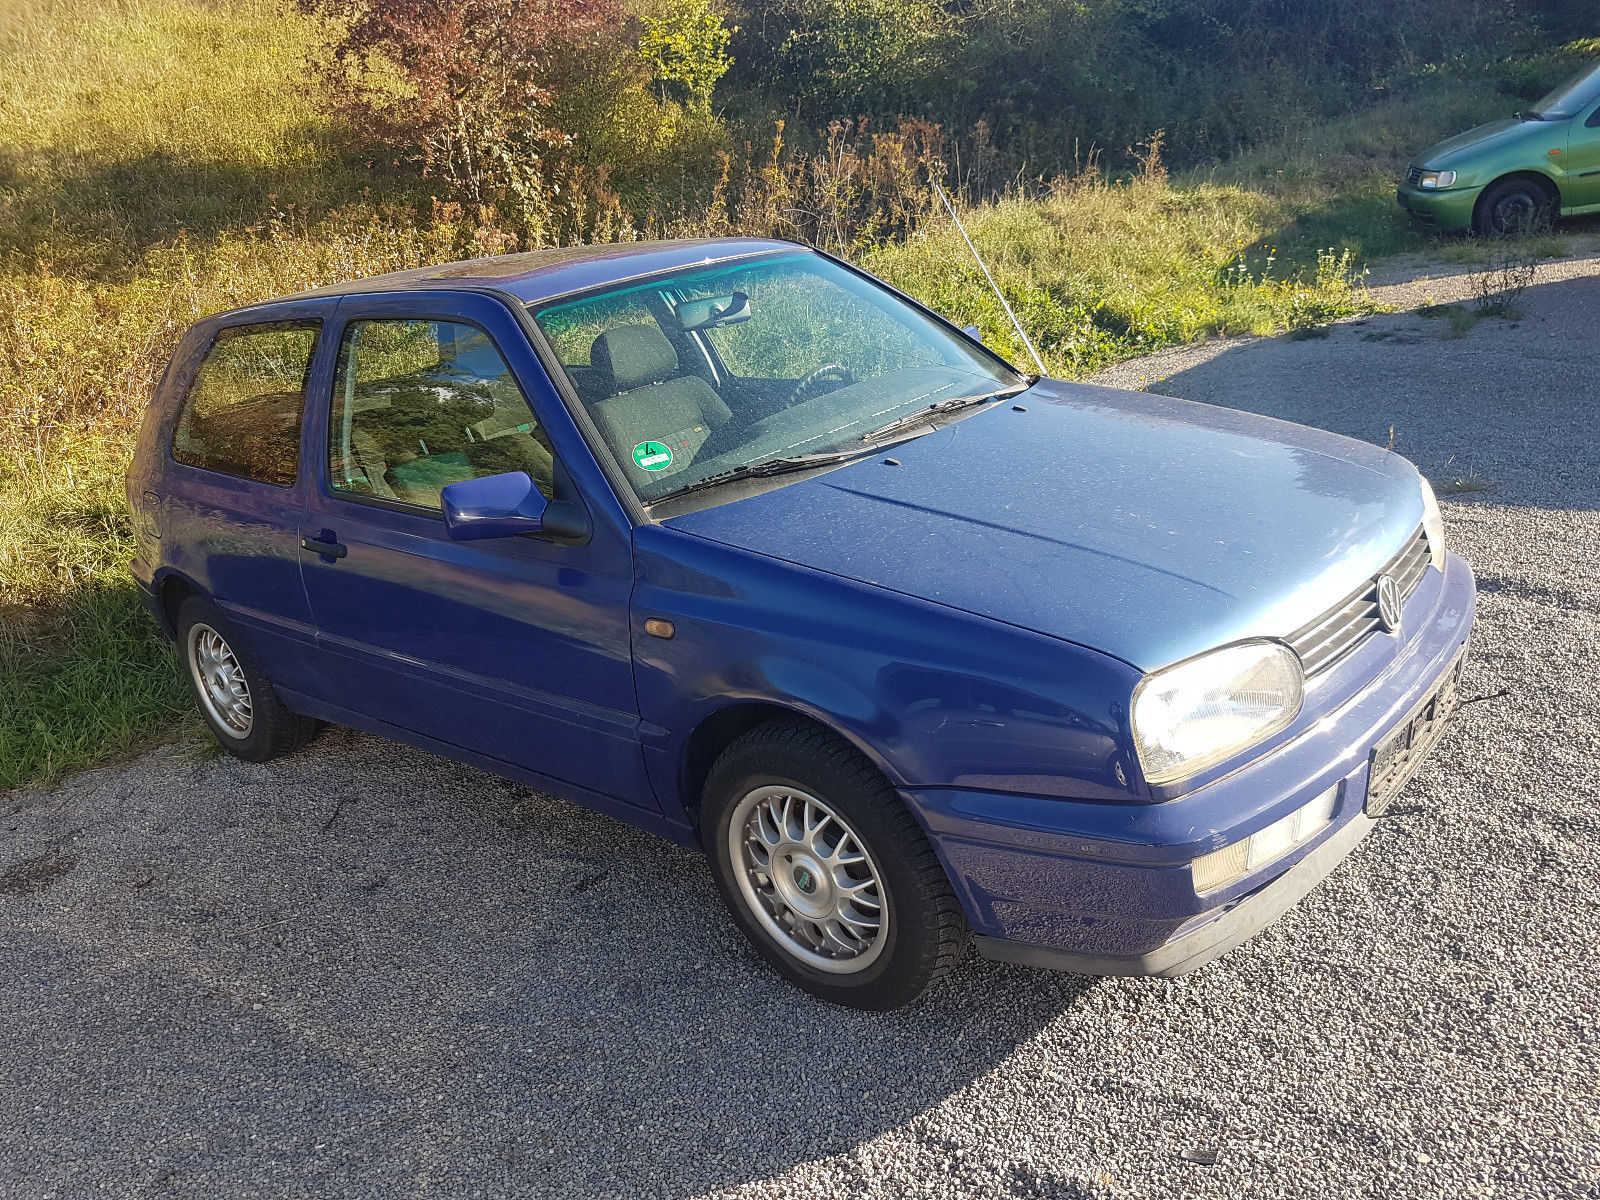 VW Golf 1.4 Bon Jovi